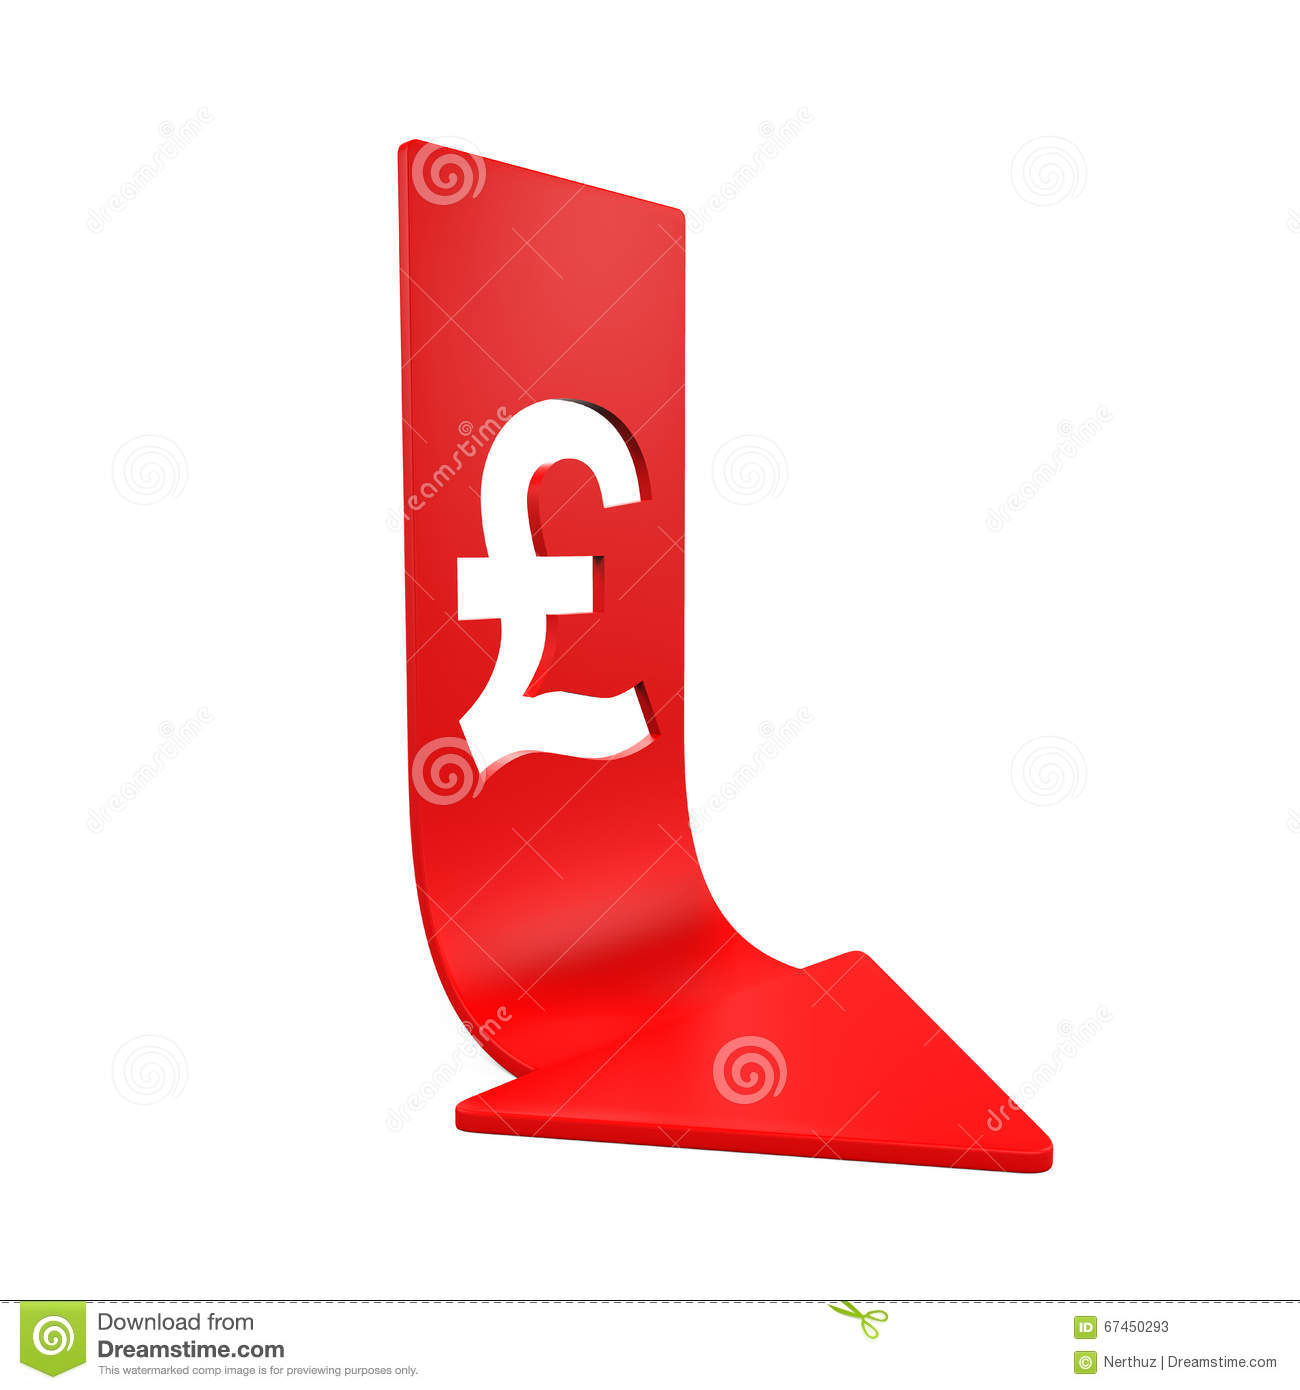 Great britain pound symbol and red arrow stock illustration great britain pound symbol and red arrow biocorpaavc Choice Image